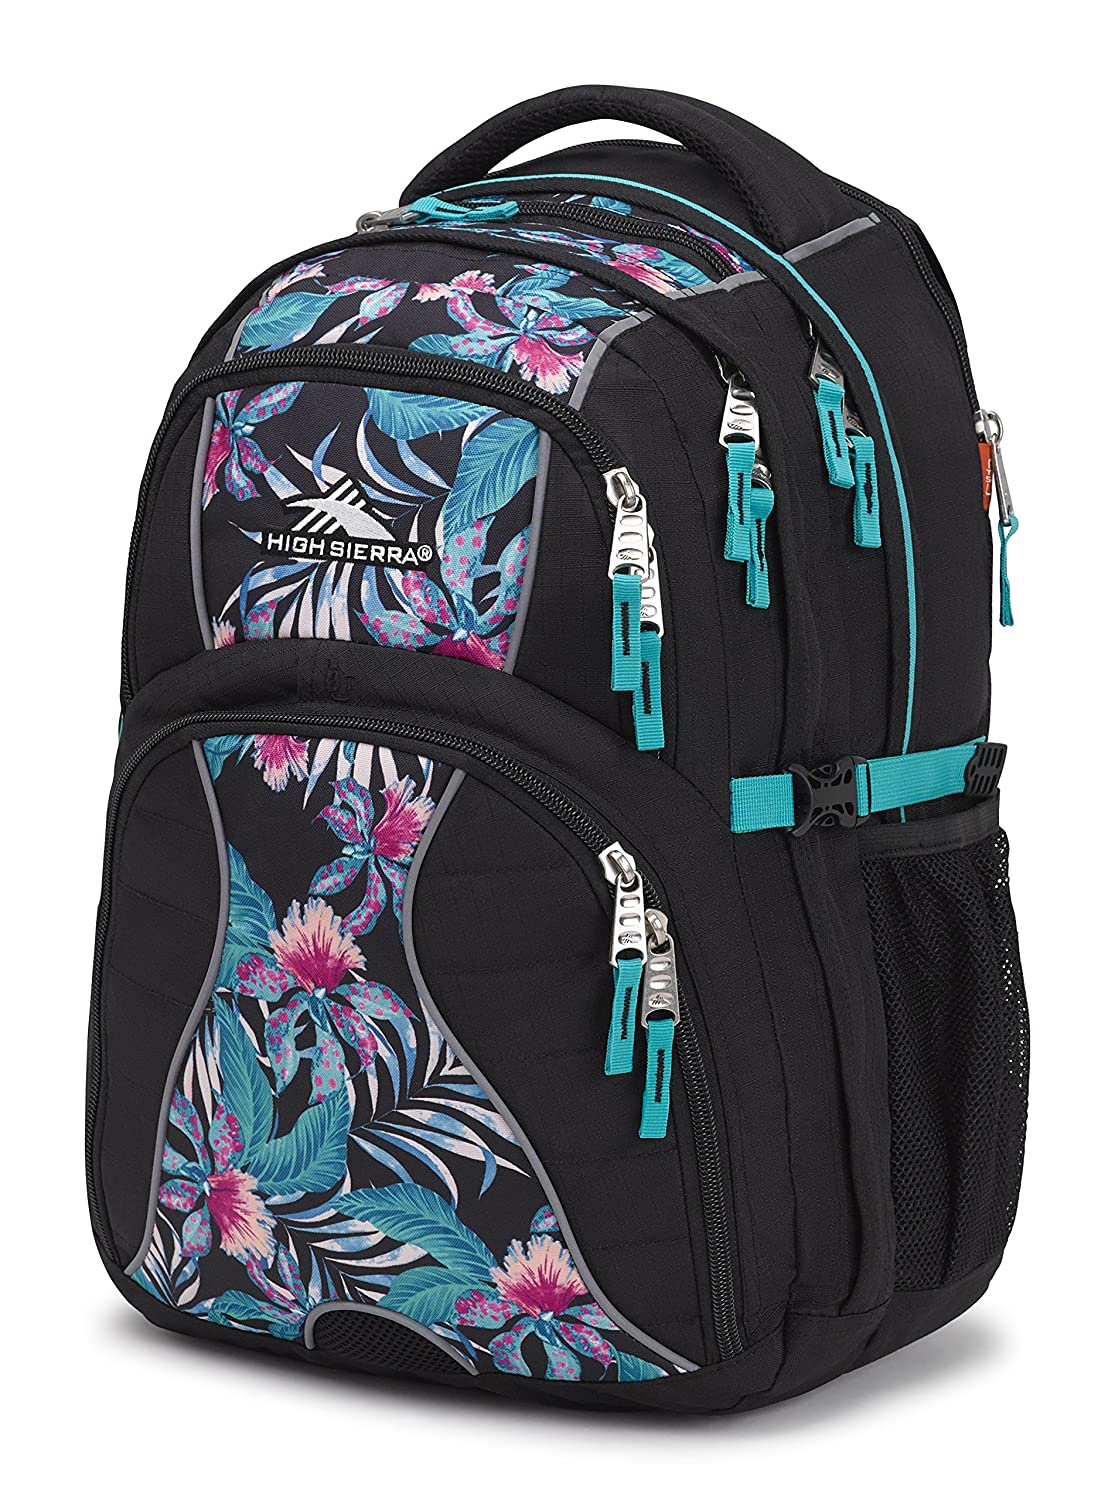 High Sierra Swerve Laptop Backpack, Great for High School, College Backpack, School Bag, Business Backpack, Travel Pack, Laptop Sleeve, Perfect for Men and Women Aquamarine/Tri Geo/White High Sierra Sport Company 53665-6721